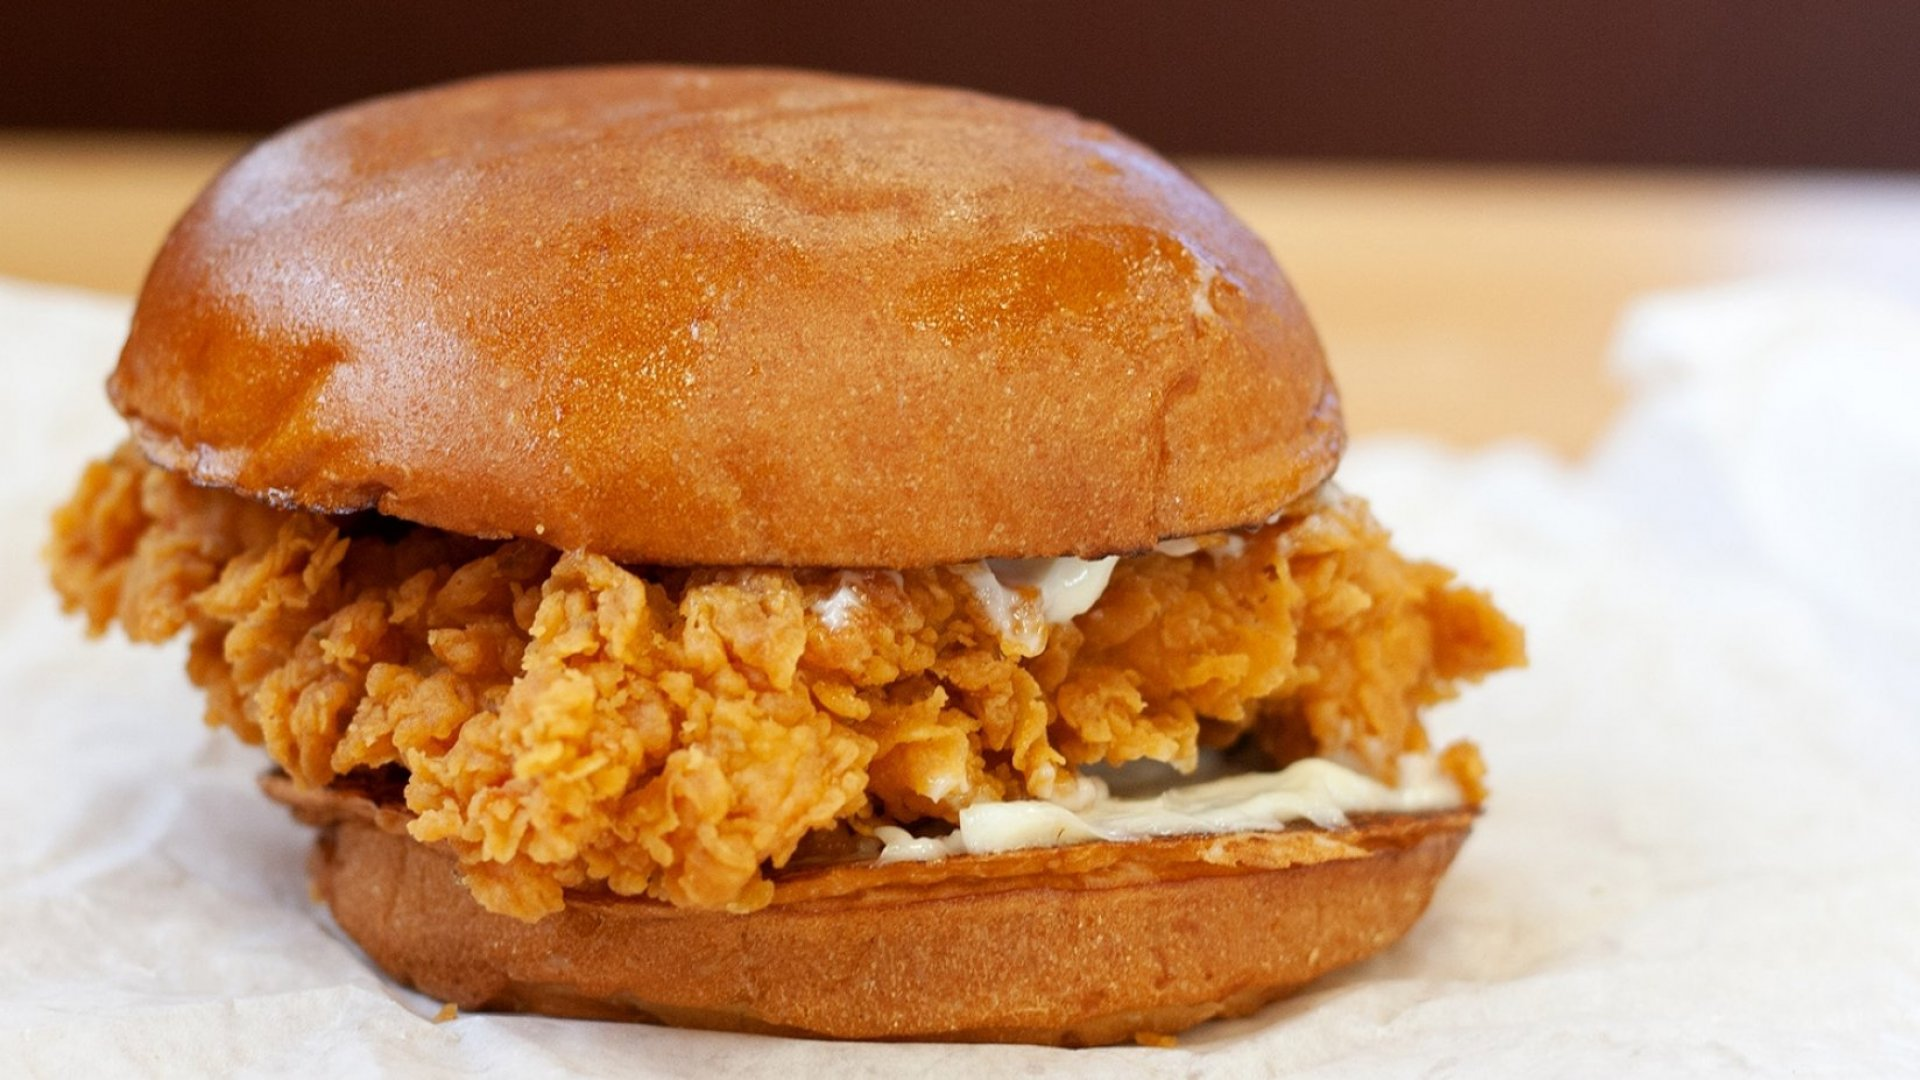 Popeyes Runs Out of New Chicken Sandwich in Just 15 Days